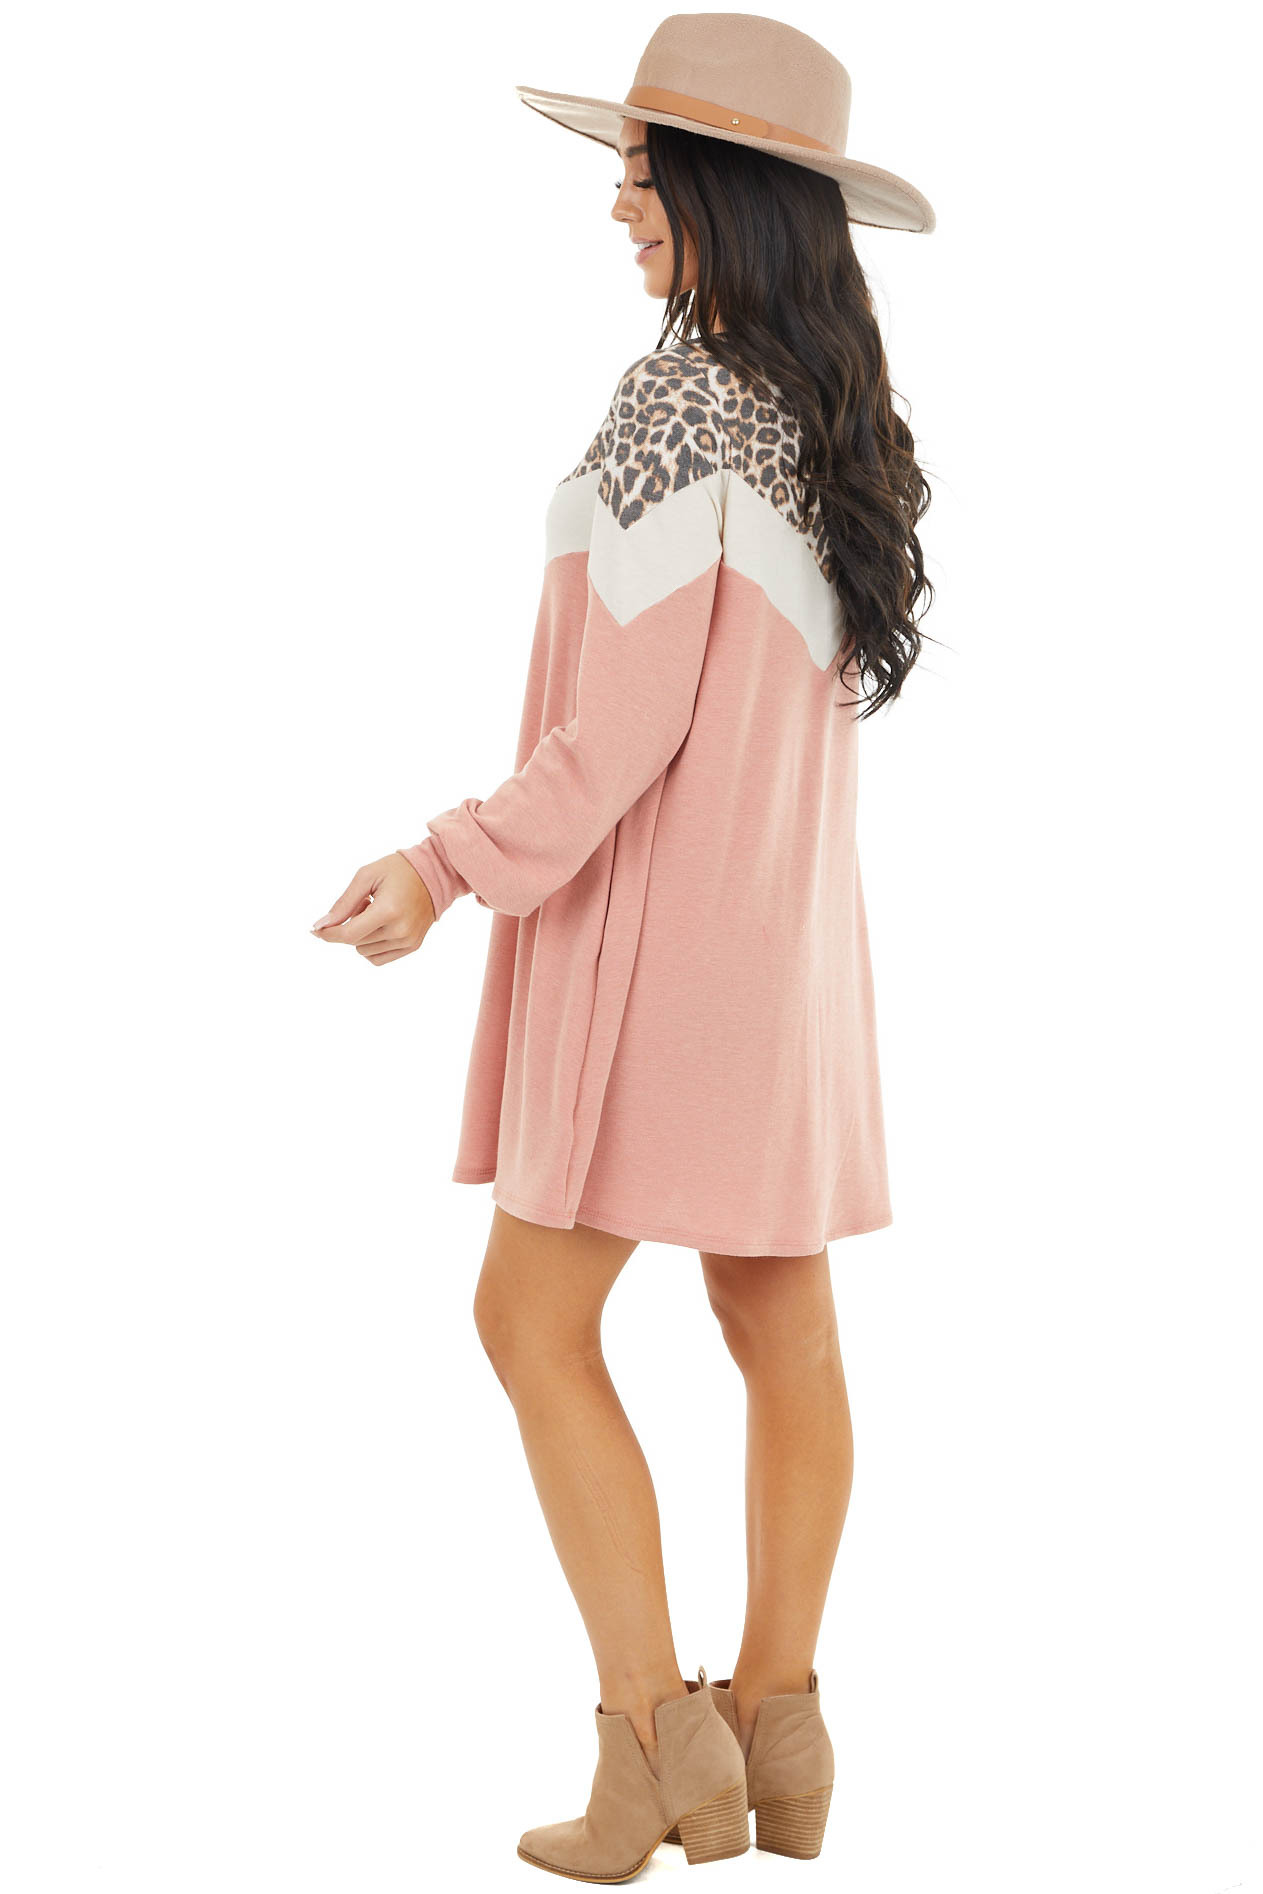 Faded Coral Long Sleeve Colorblock Dress with Leopard Detail